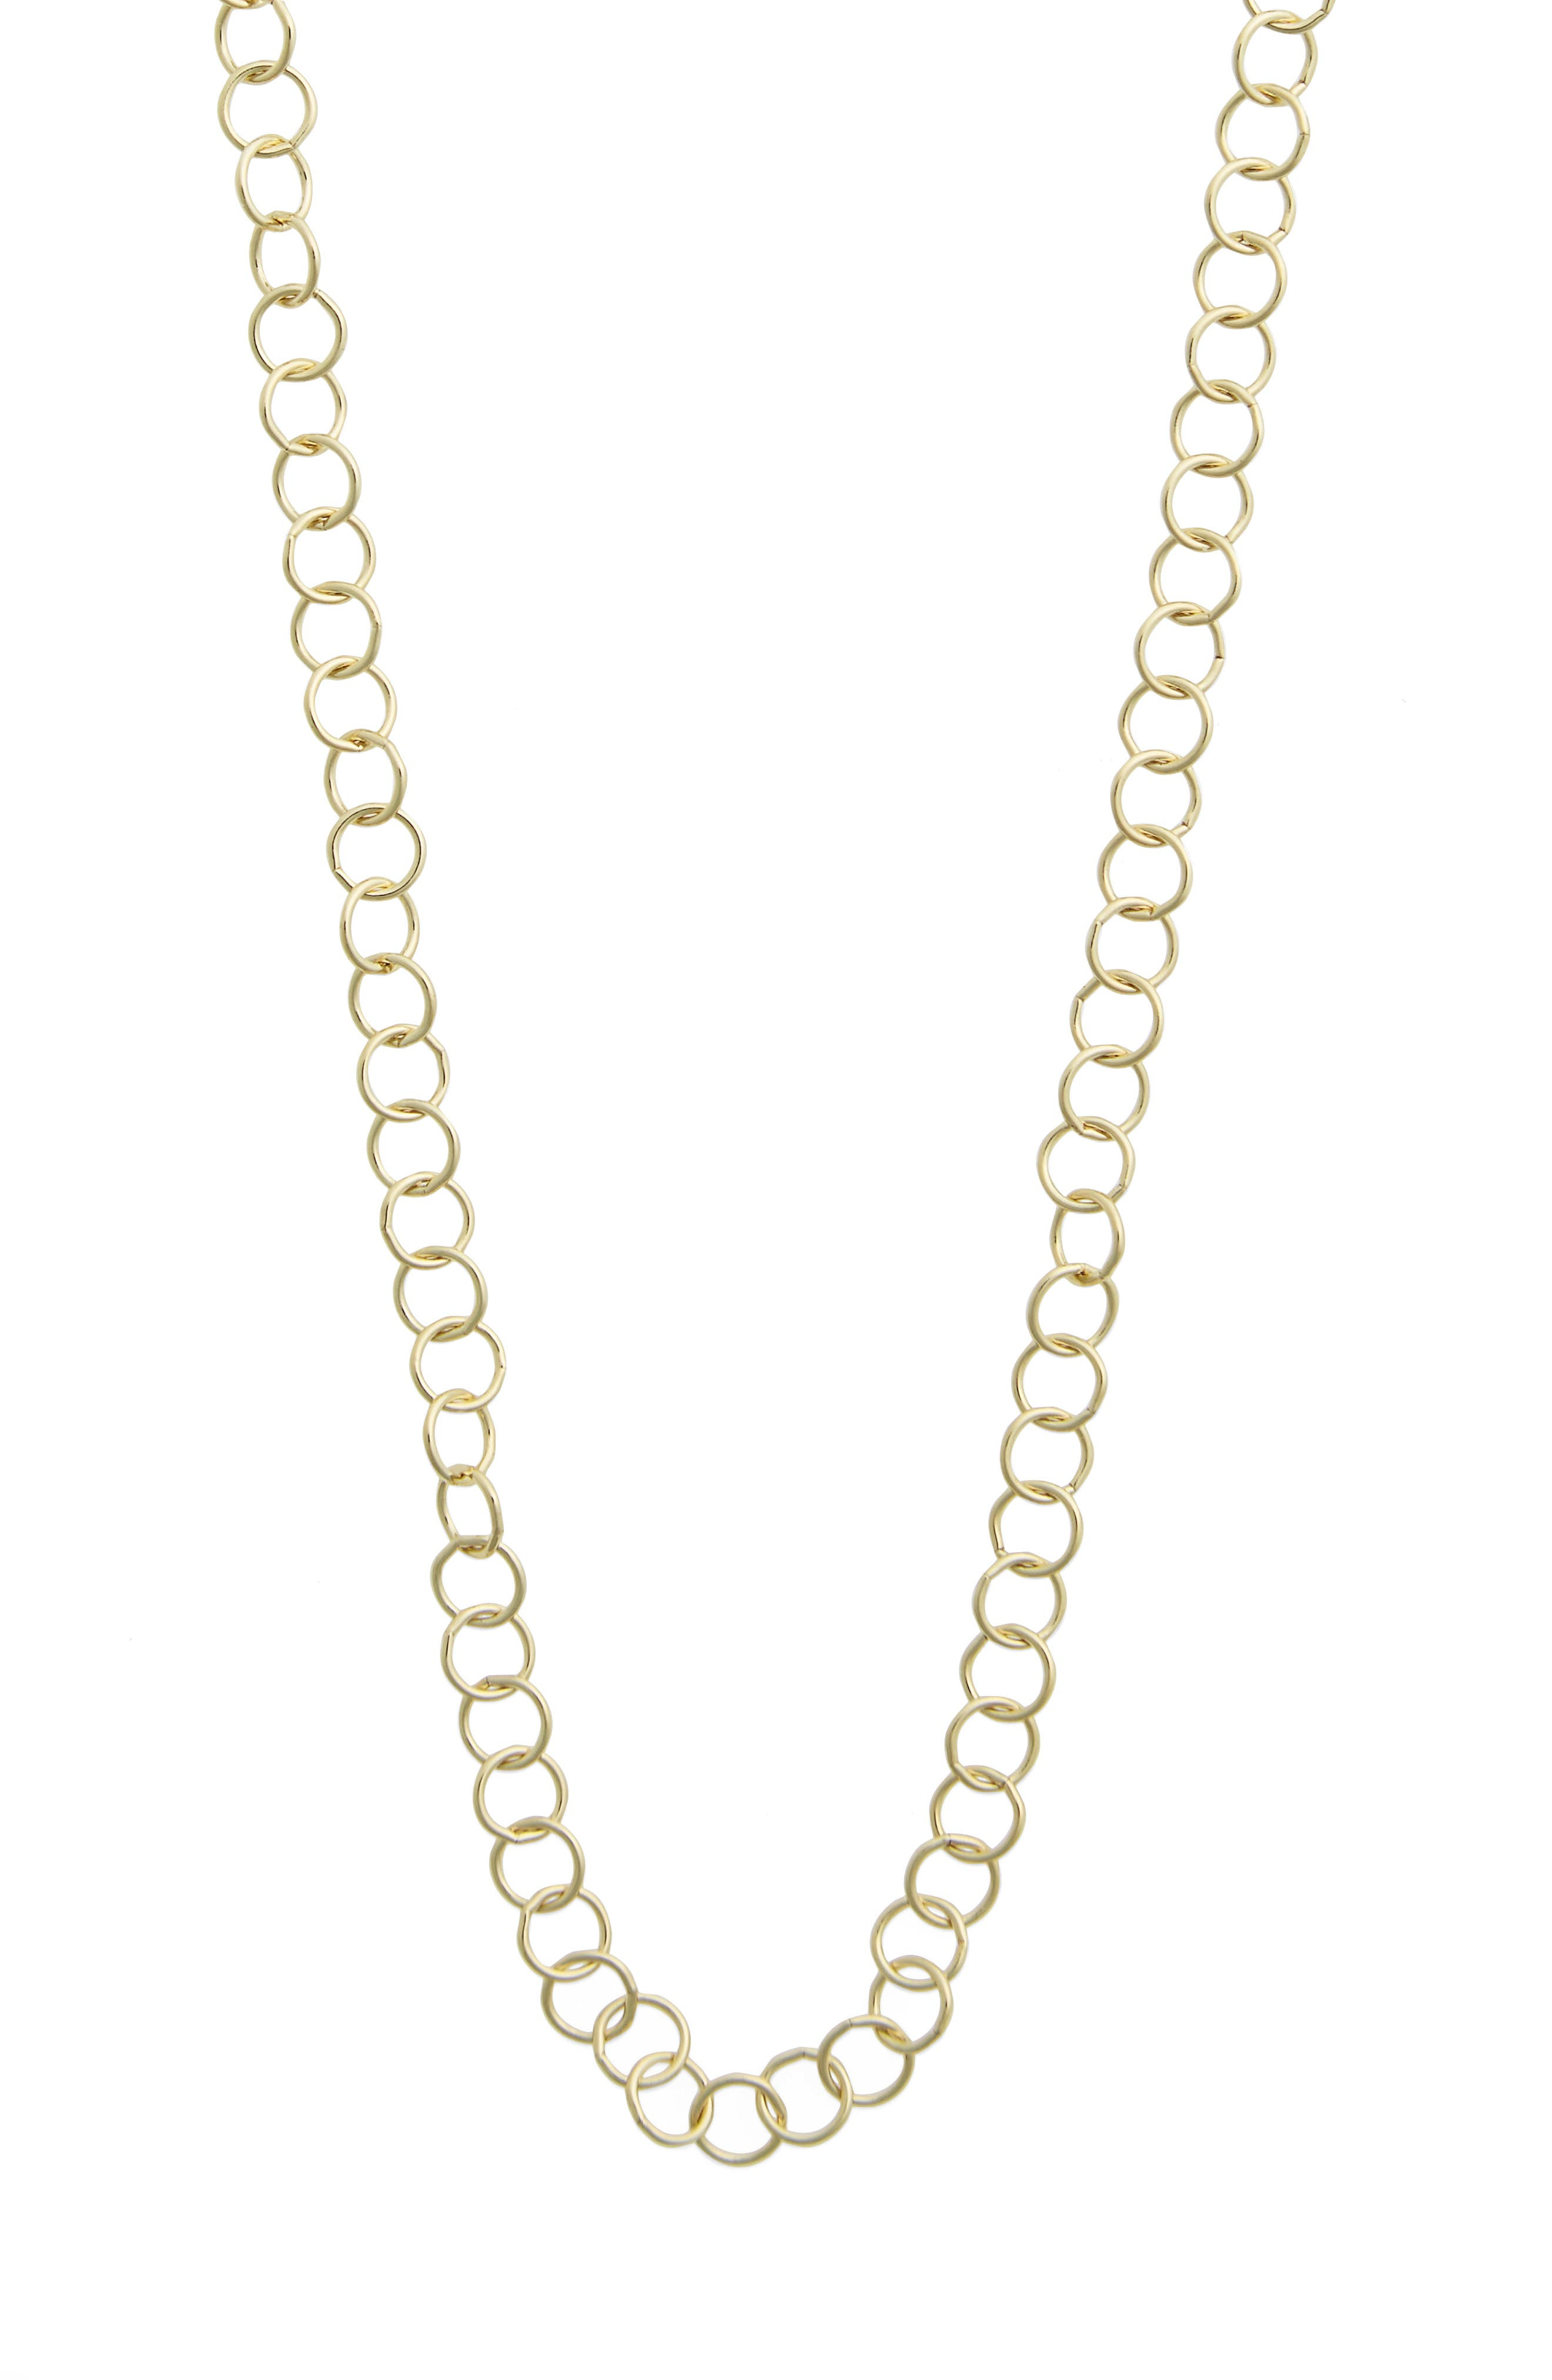 Temple St. Clair 24-Inch Round Chain Necklace,                         Main,                         color, YELLOW GOLD